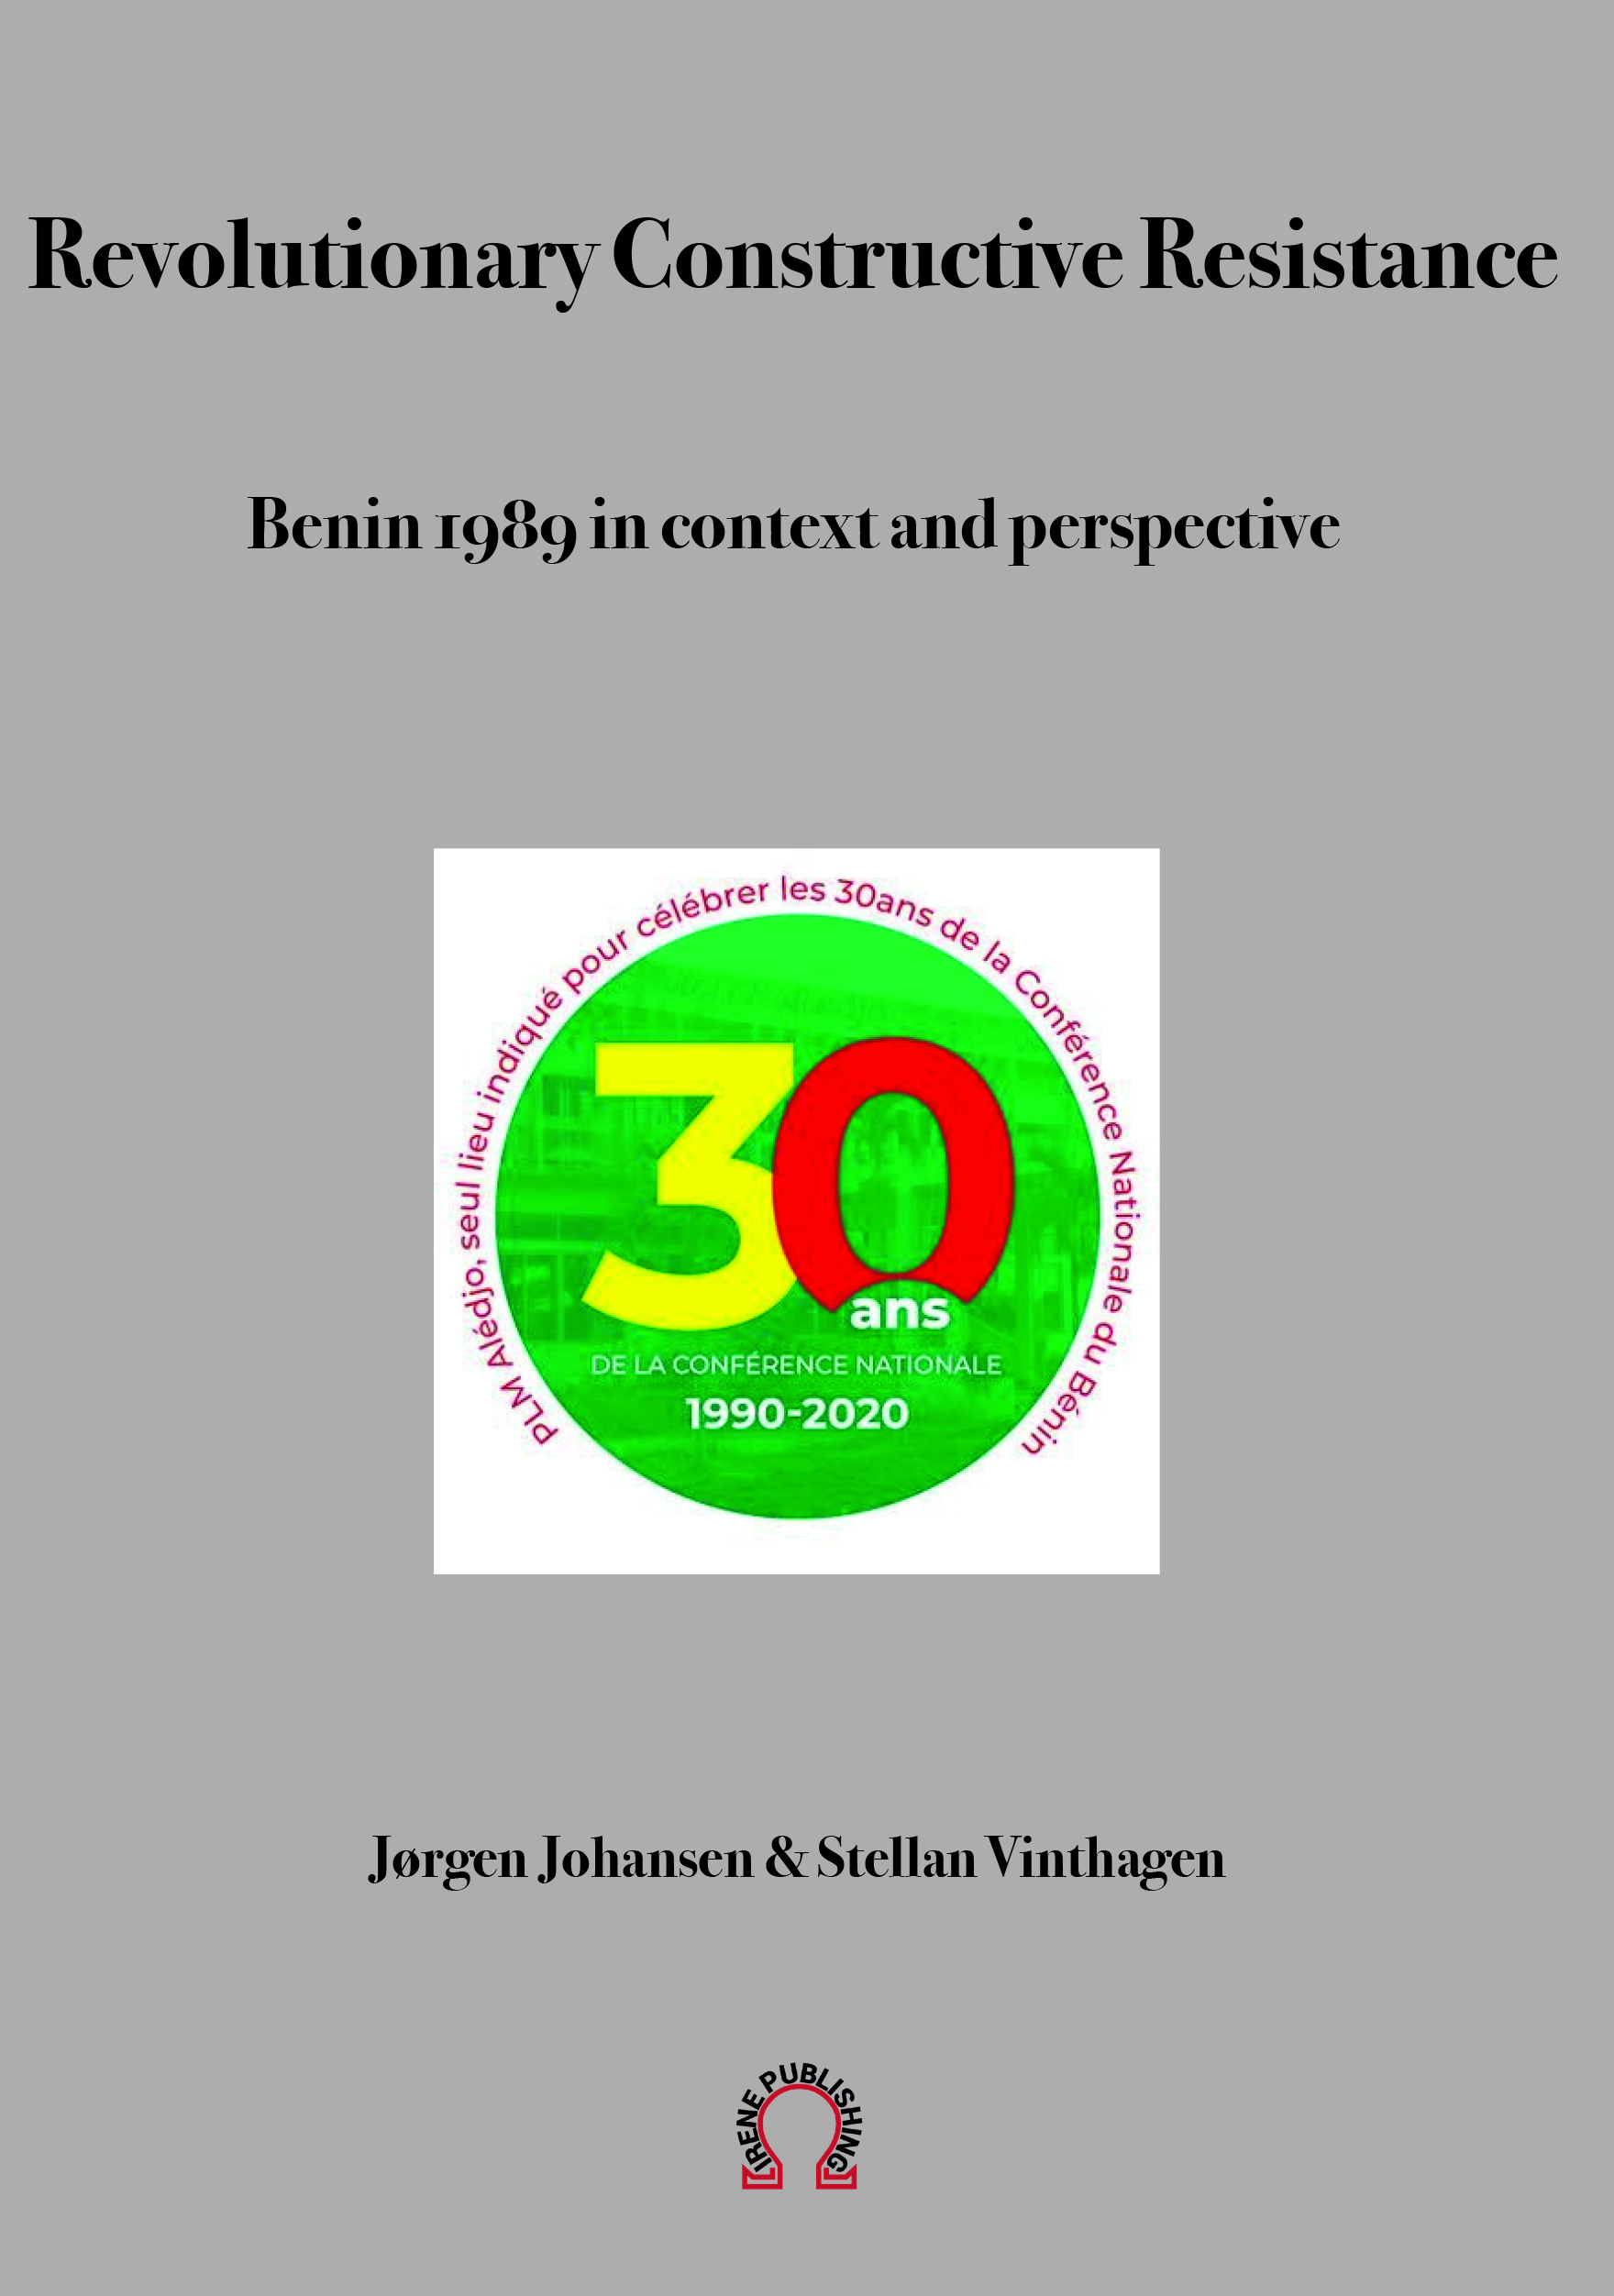 Revolutionary Constructive Resistance, Benin 1989 in context and perspective (ebook)